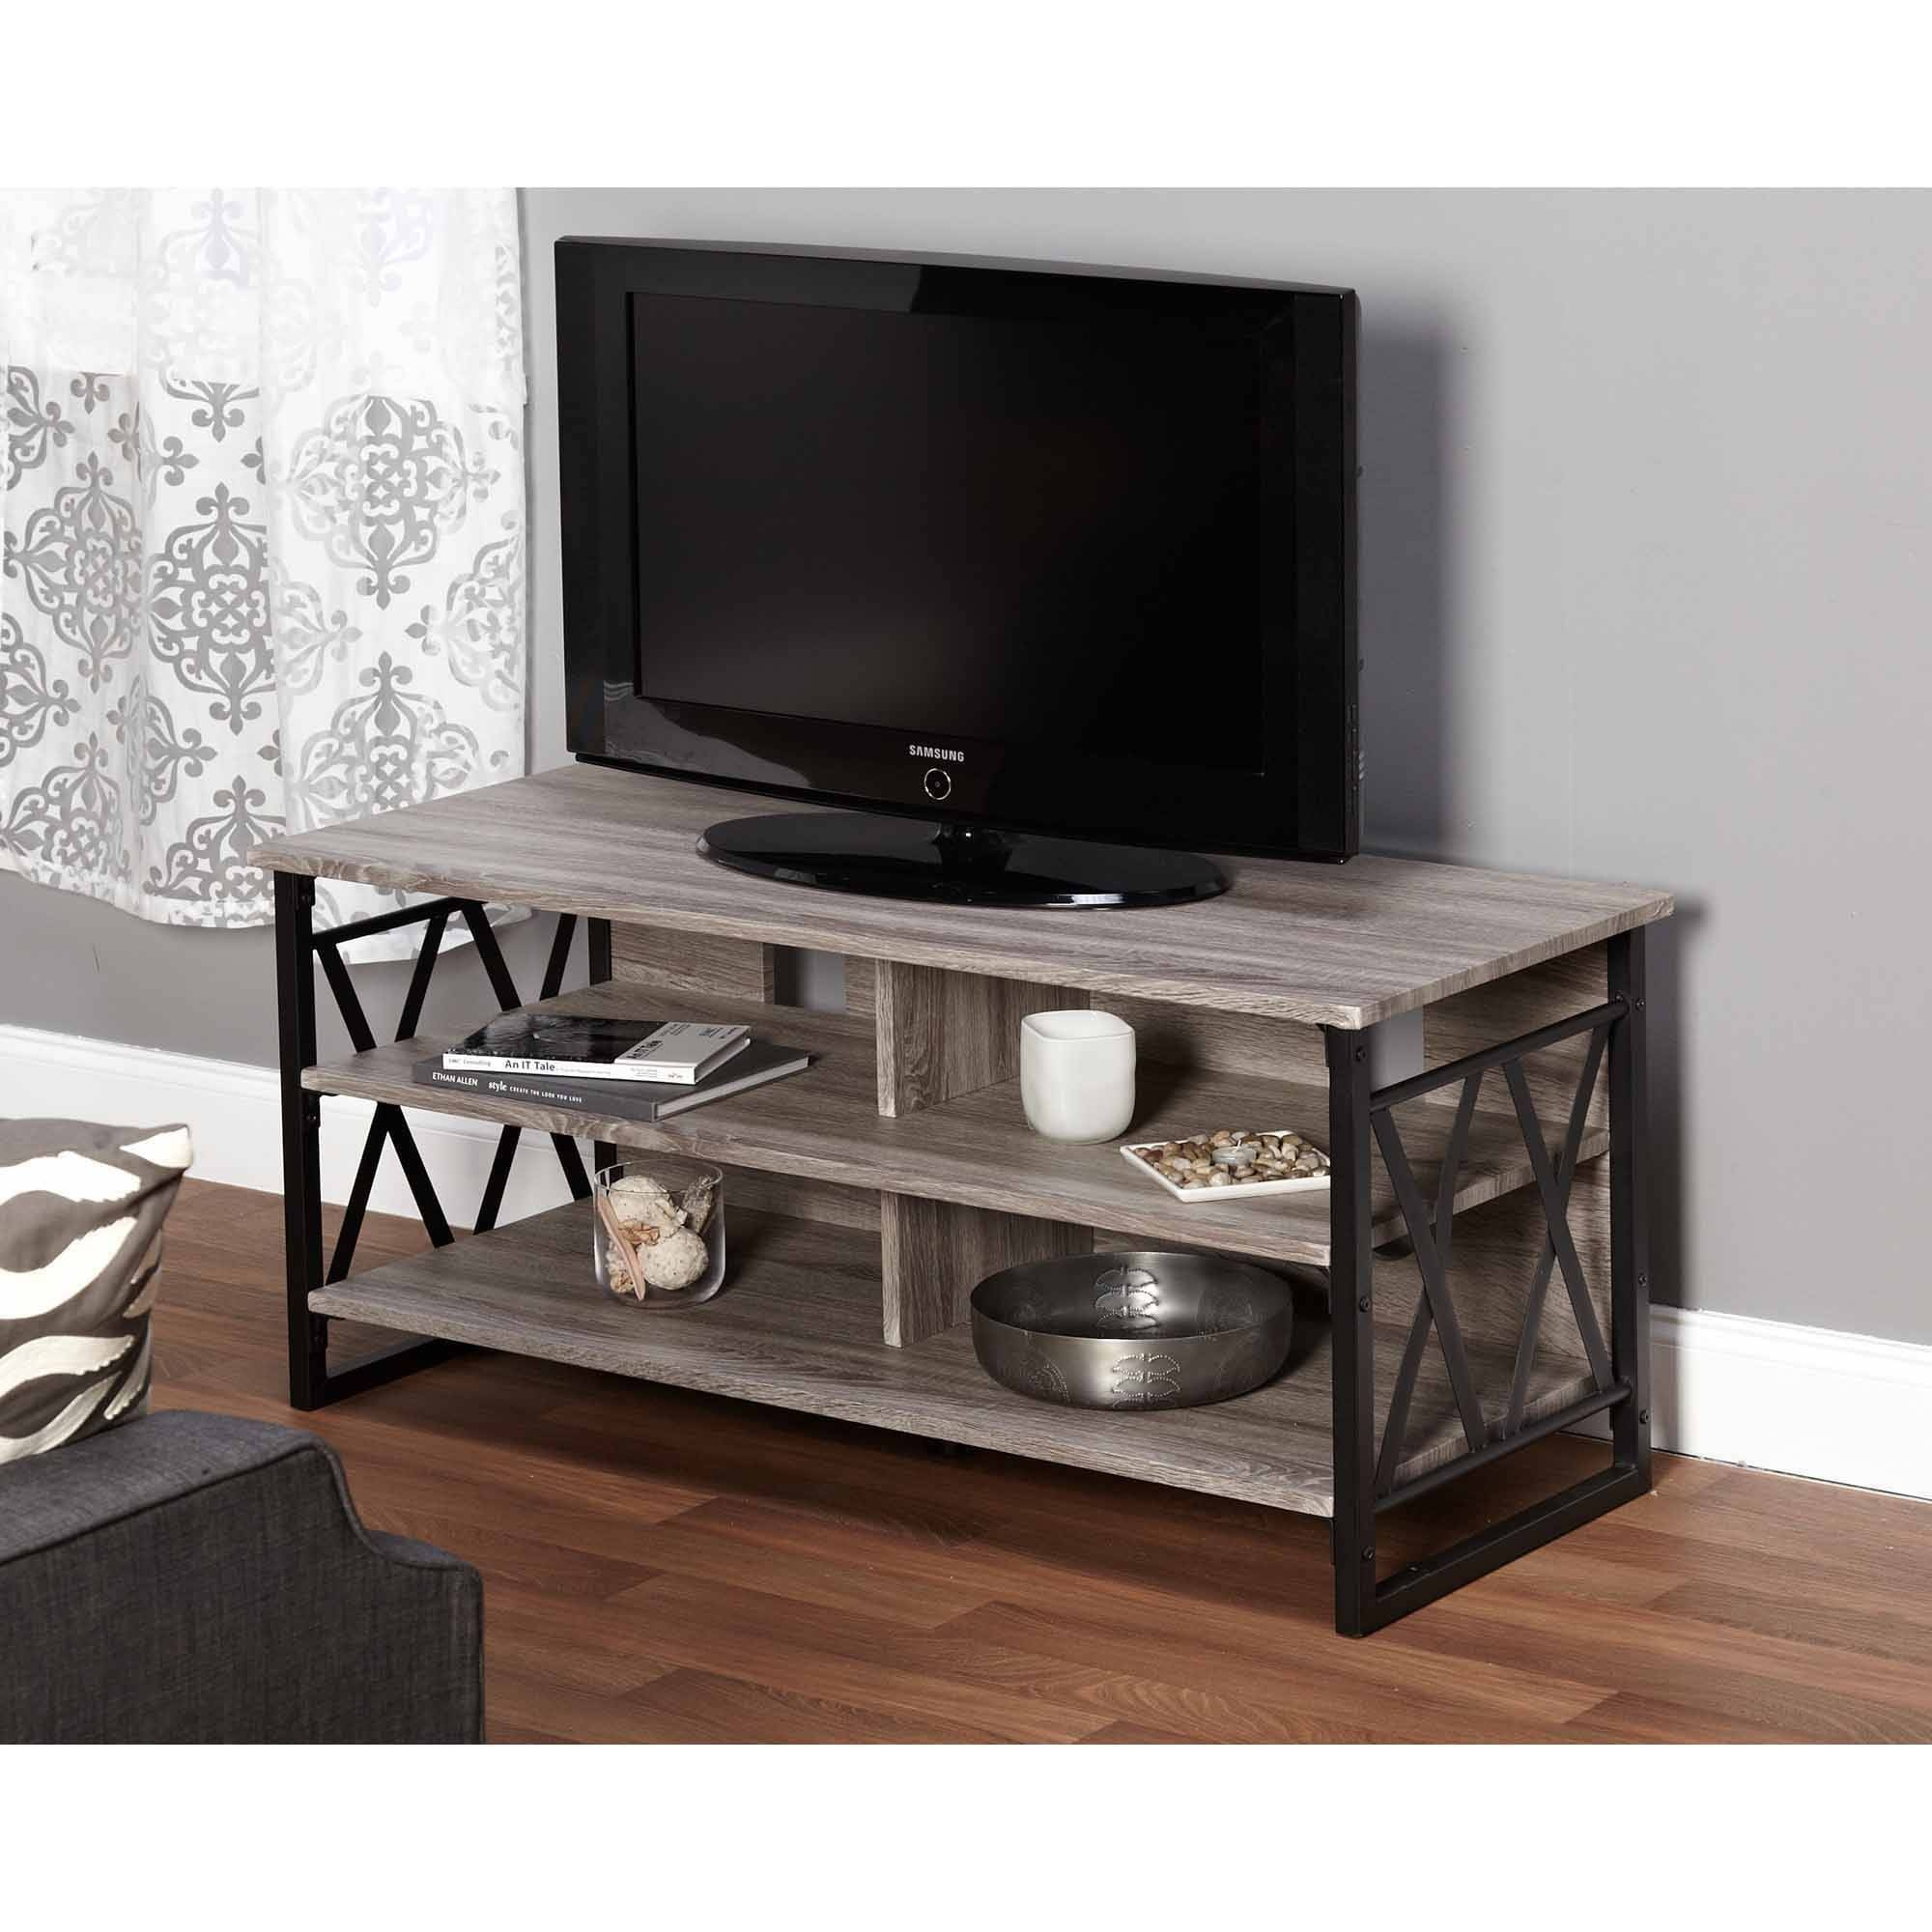 Charming Light Wood Tv Stand 75 For Your Home Decorating Ideas regarding Reclaimed Wood And Metal Tv Stands (Image 9 of 15)